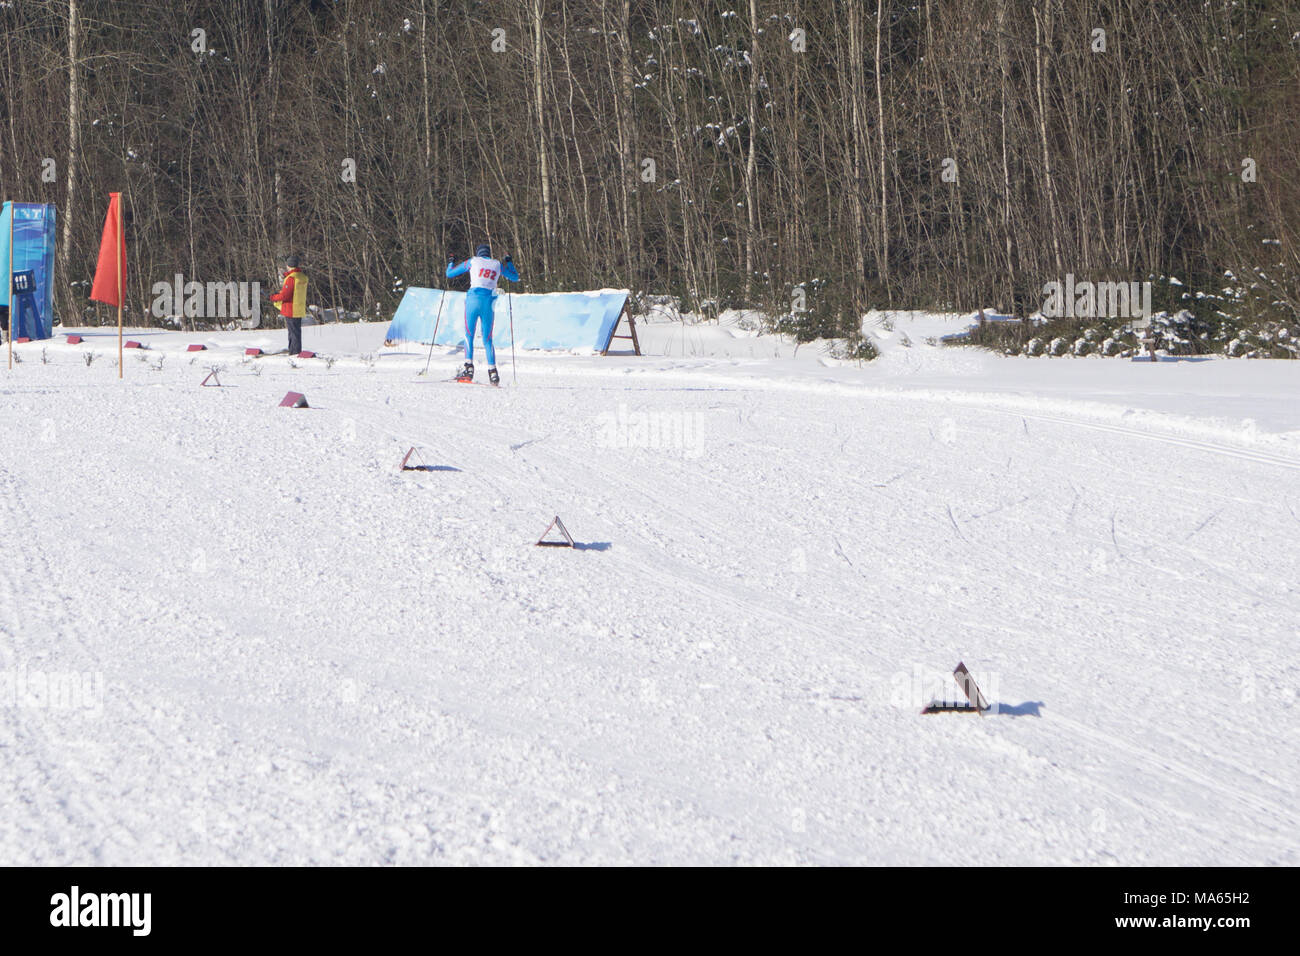 Cross-country skiing in the forest sprint approach - Stock Image